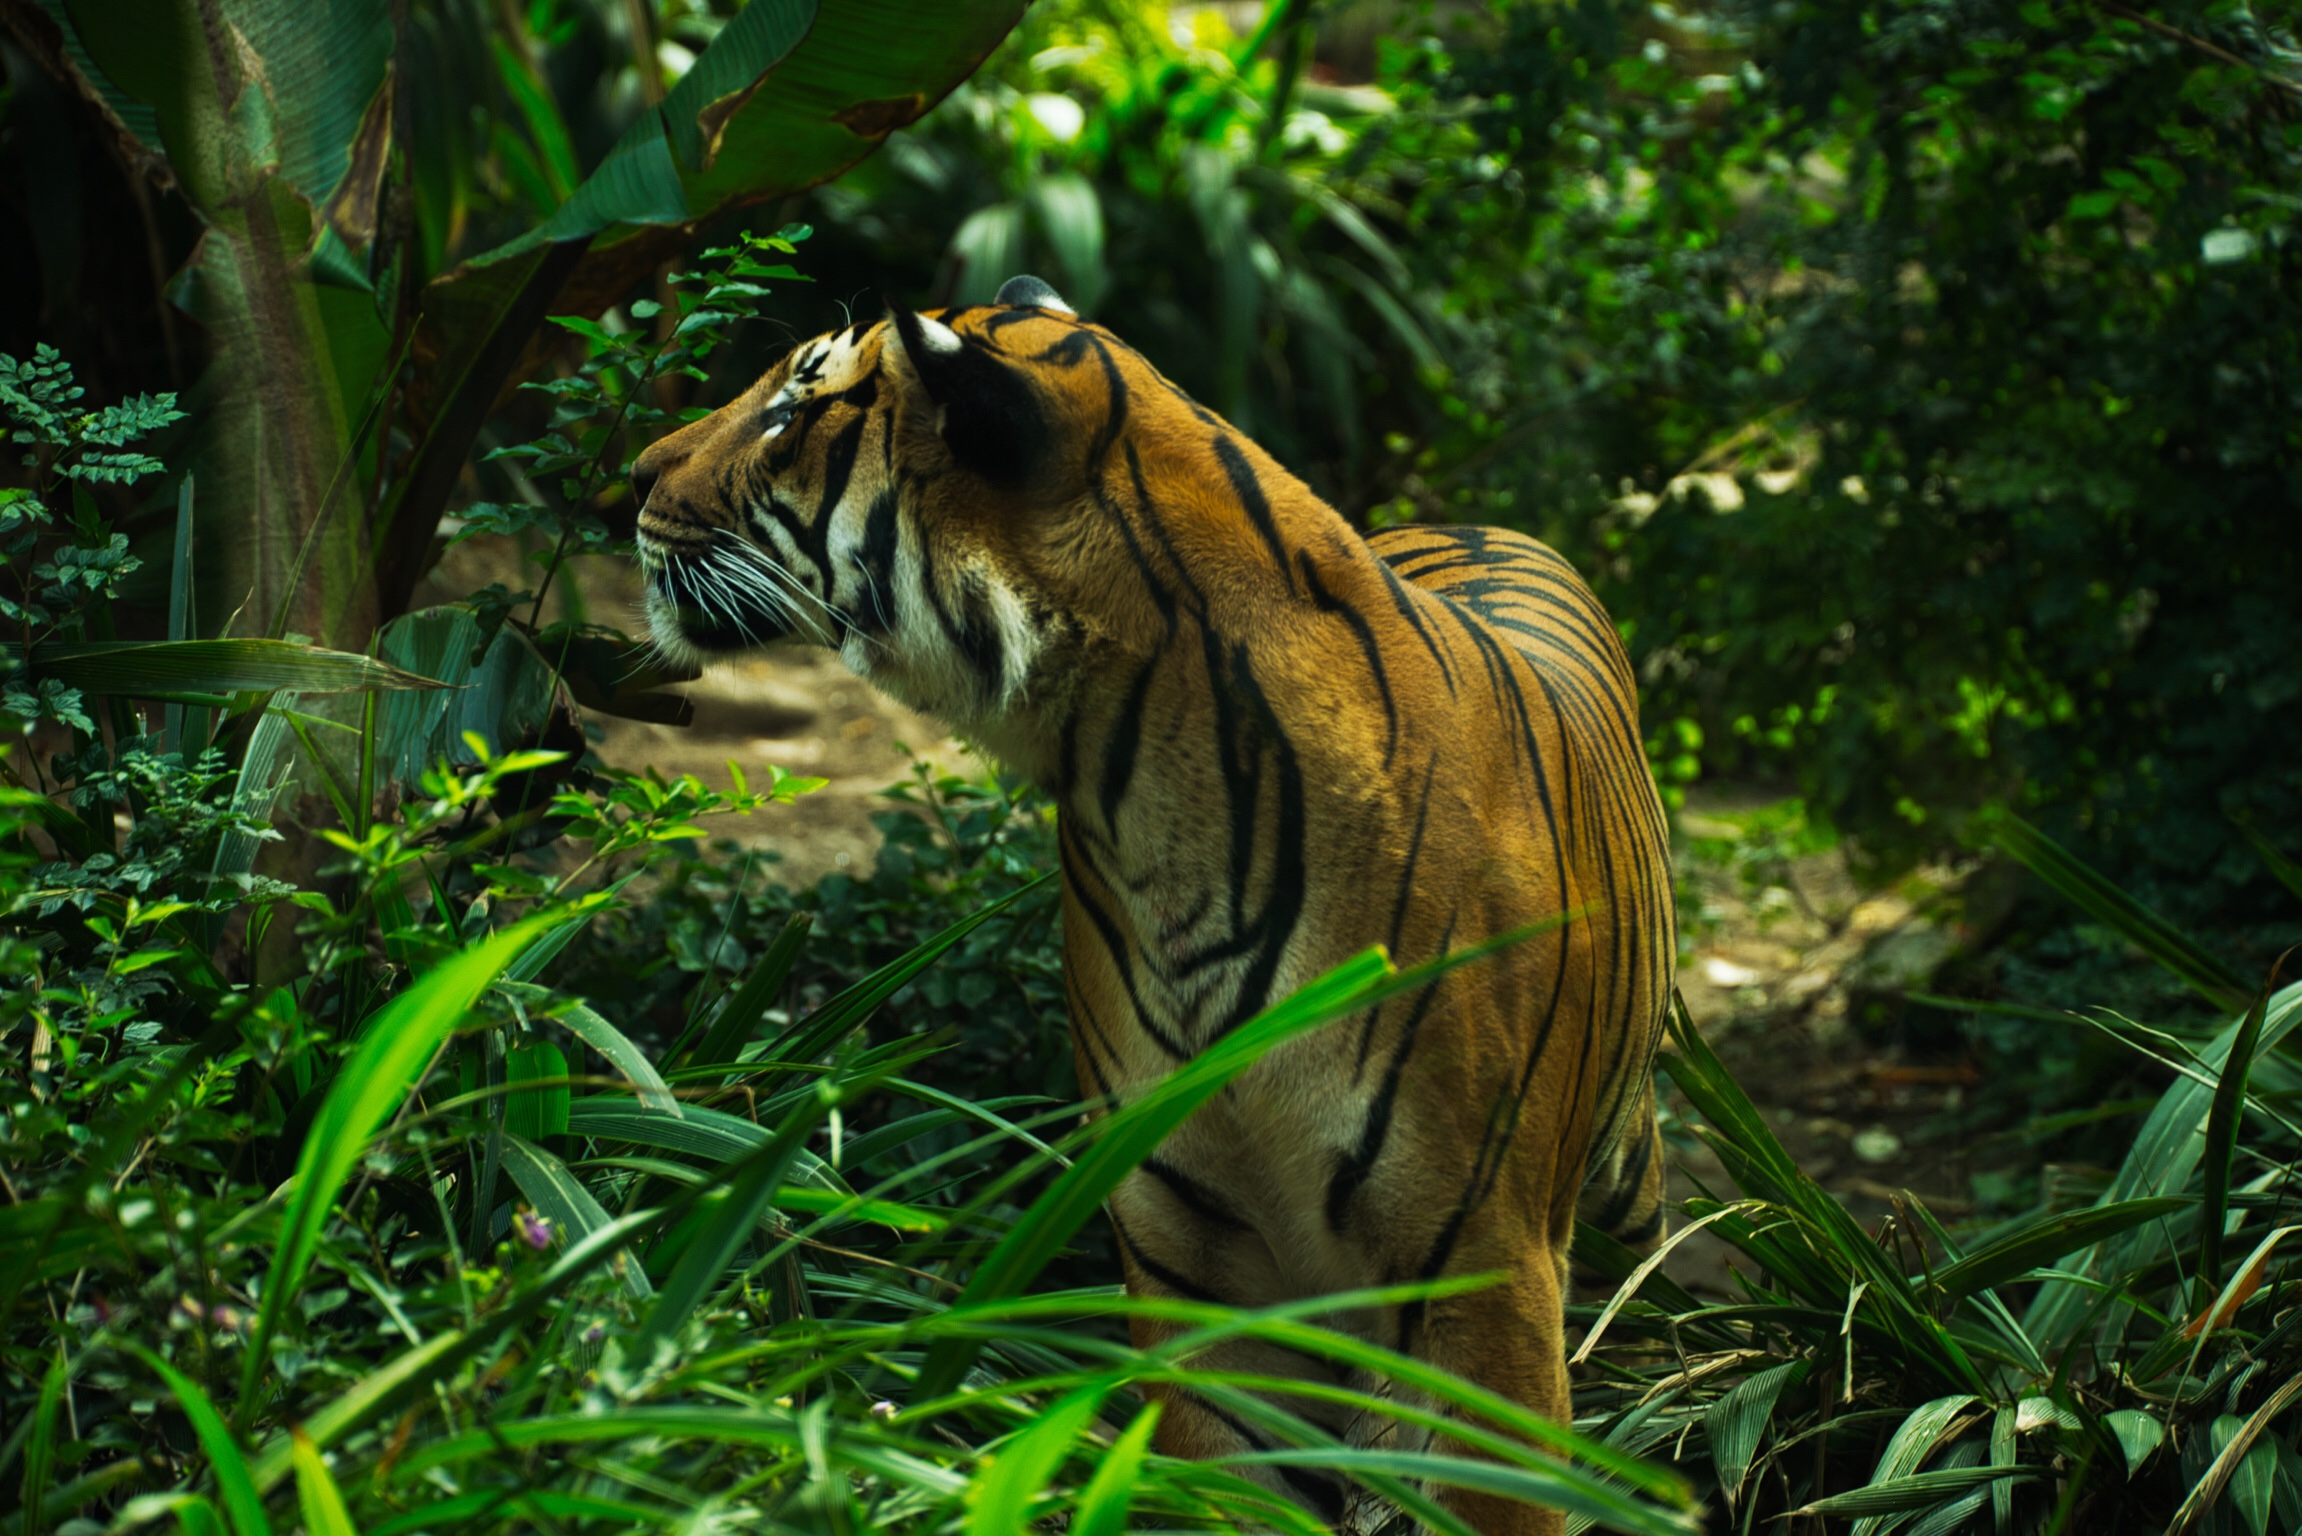 A Malaysian Tiger surveys his environment in the San Diego Zoo. This image in a raw file consumed about 25 mB of space.